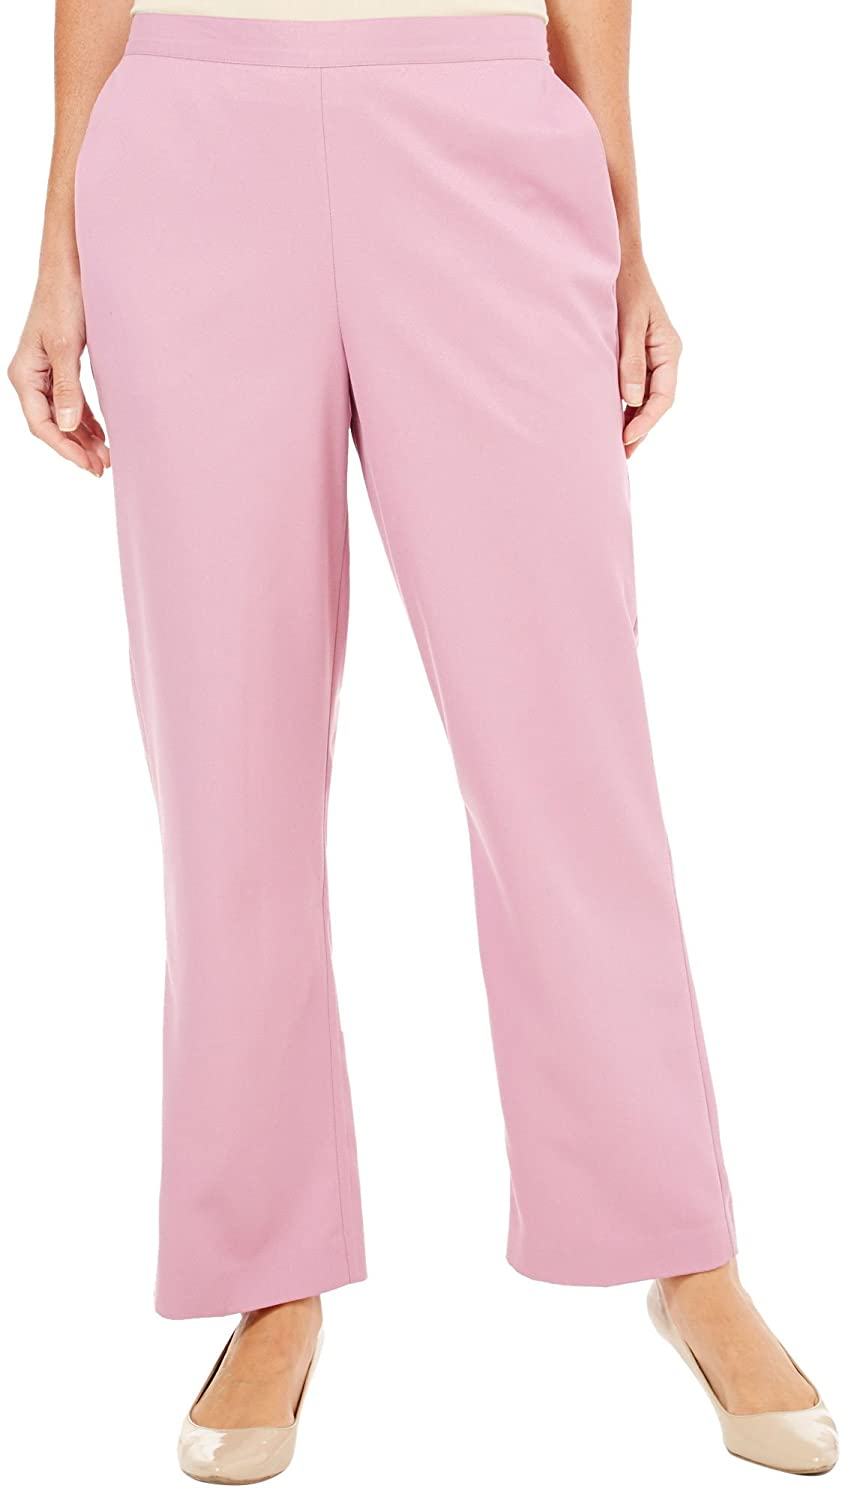 Alfred Dunner Women's Glacier Lake Flat Front Pants supplier